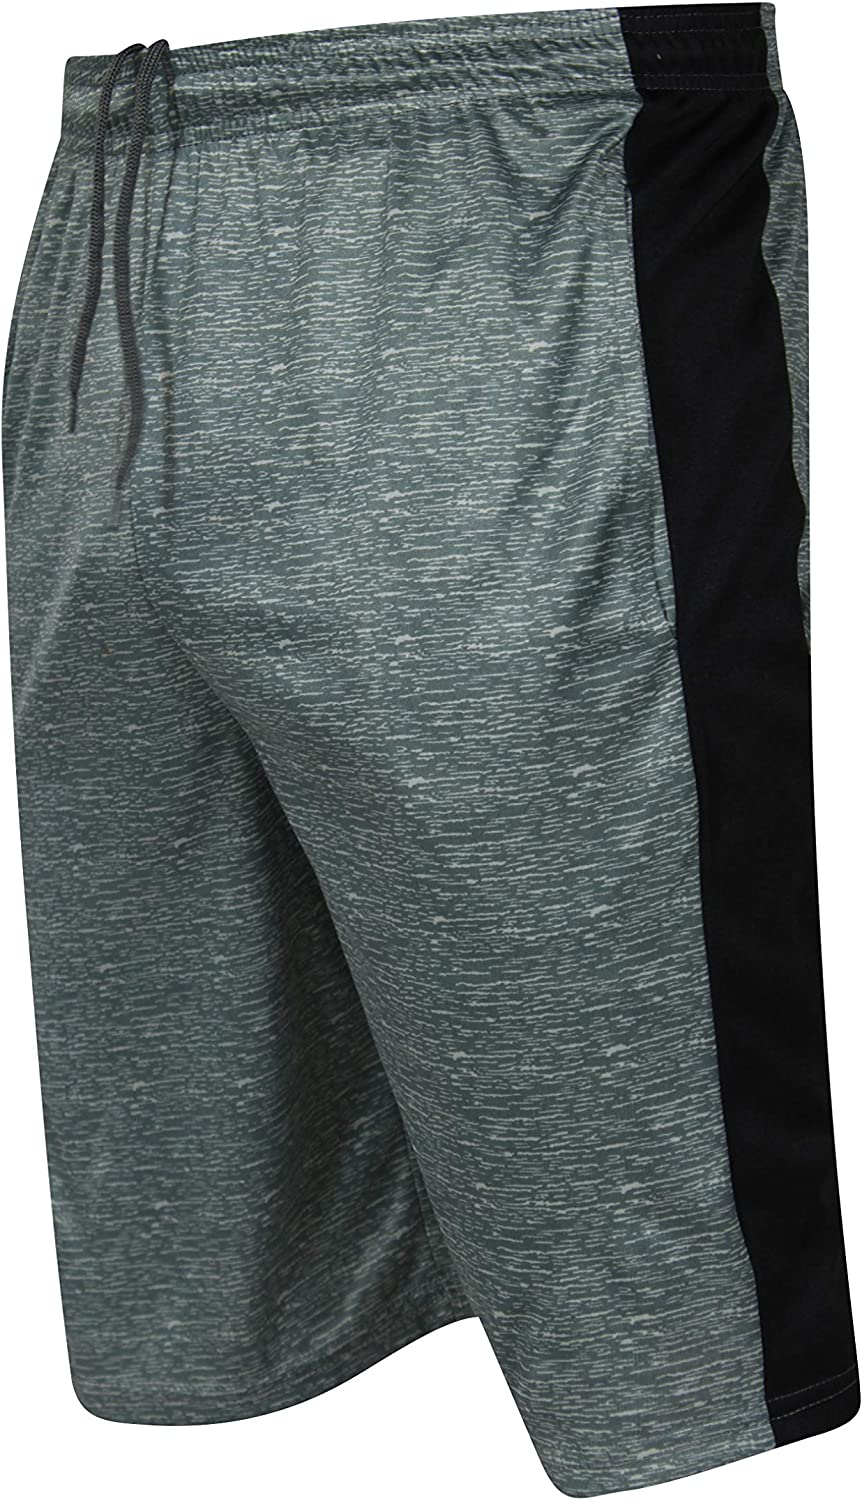 3 Pack:Men/'s Quick Dry Fit Active Athletic Basketball Tennis Essentials Gym Sport Workout Shorts-Set 5,XL